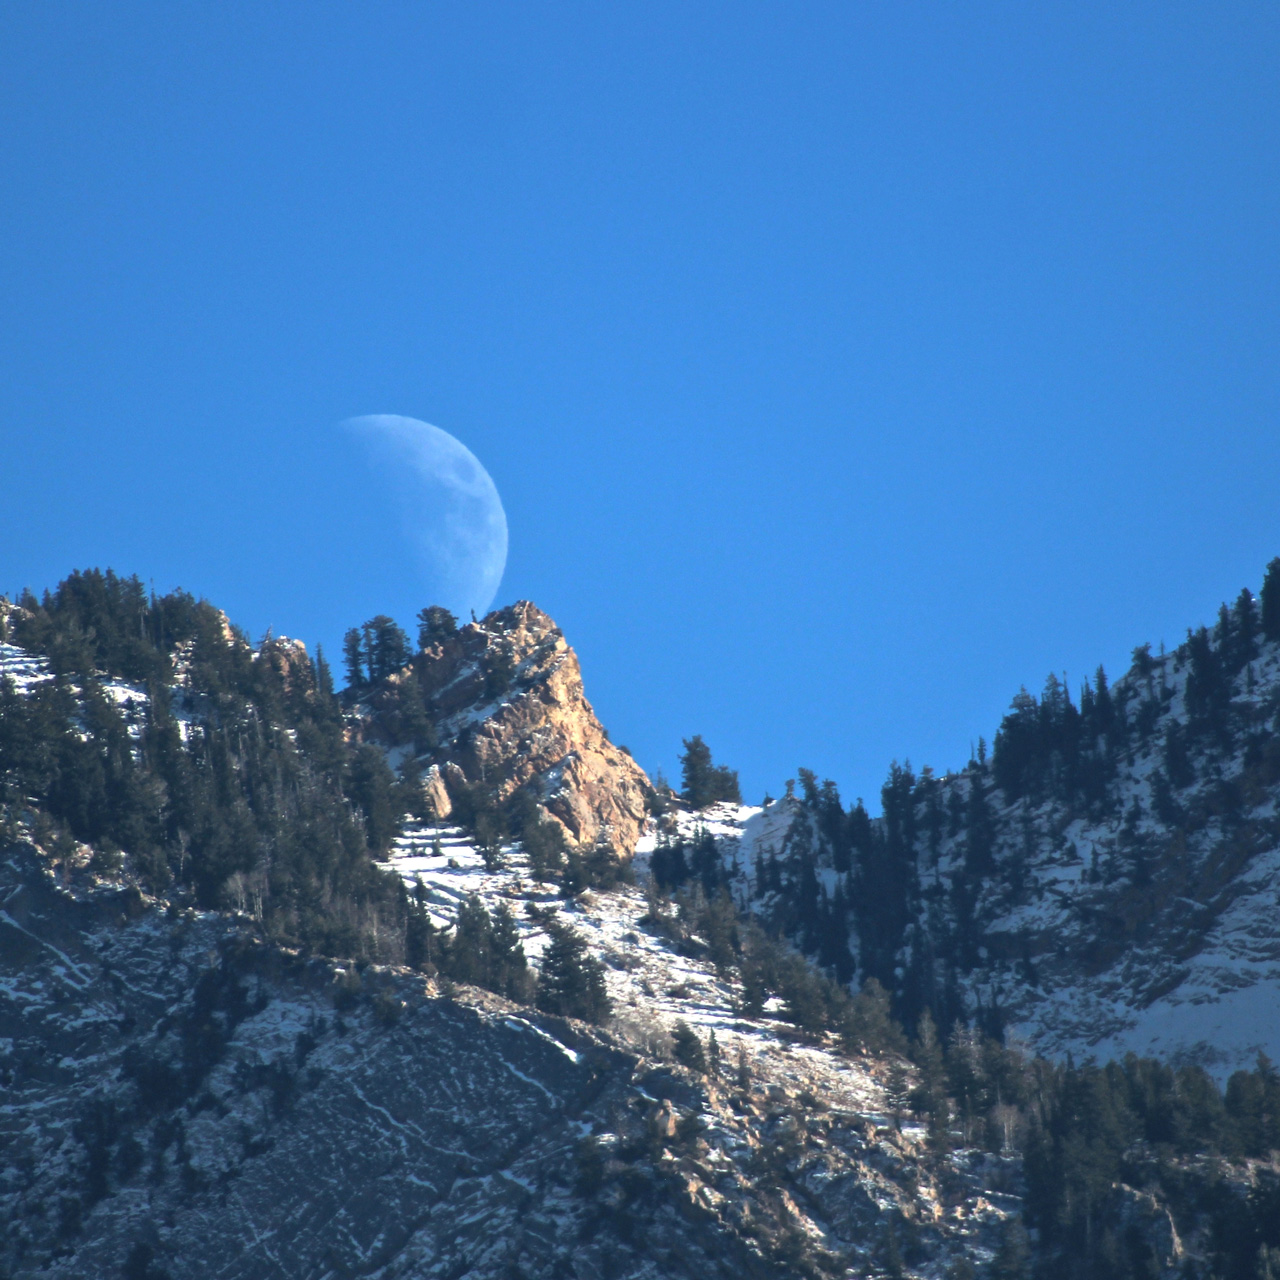 Moon in daylight rising over rocky ridge.